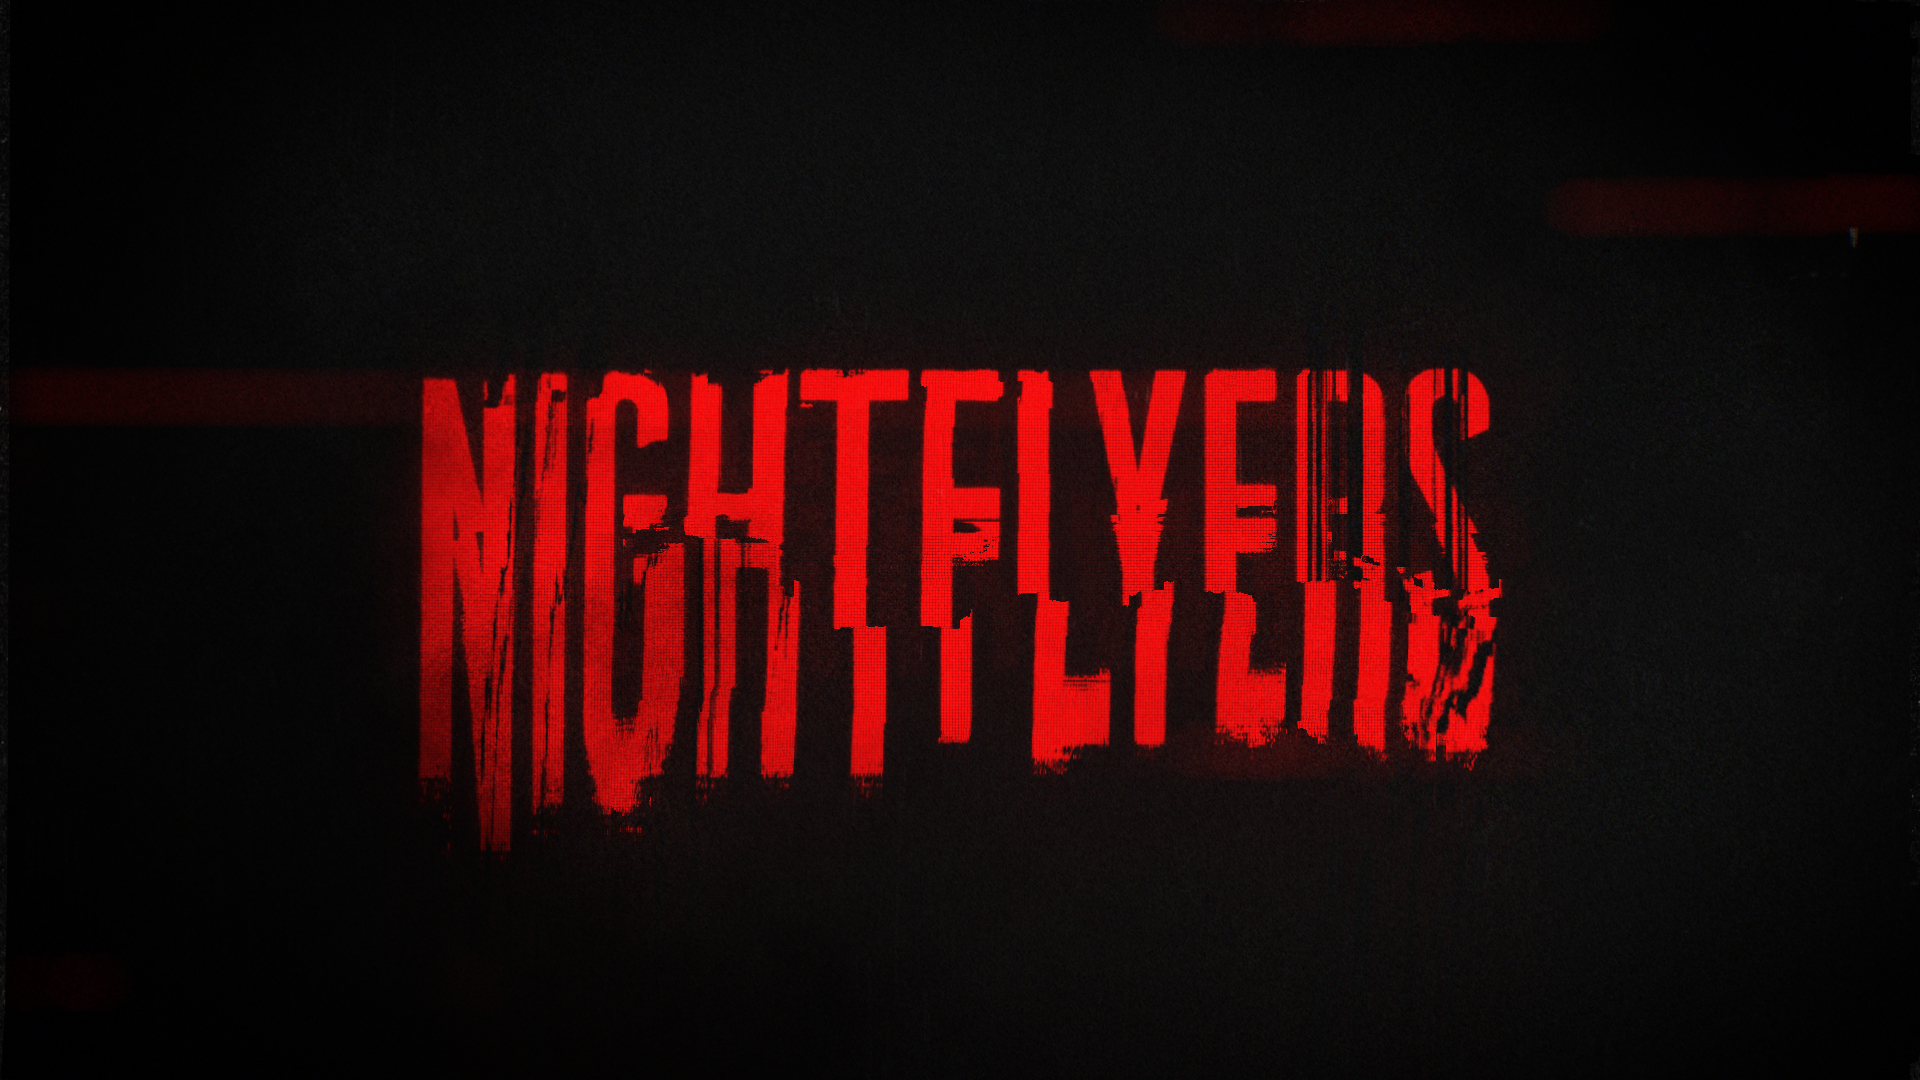 NIGHTFLYERS_PP_DESIGN_25_0000.jpg